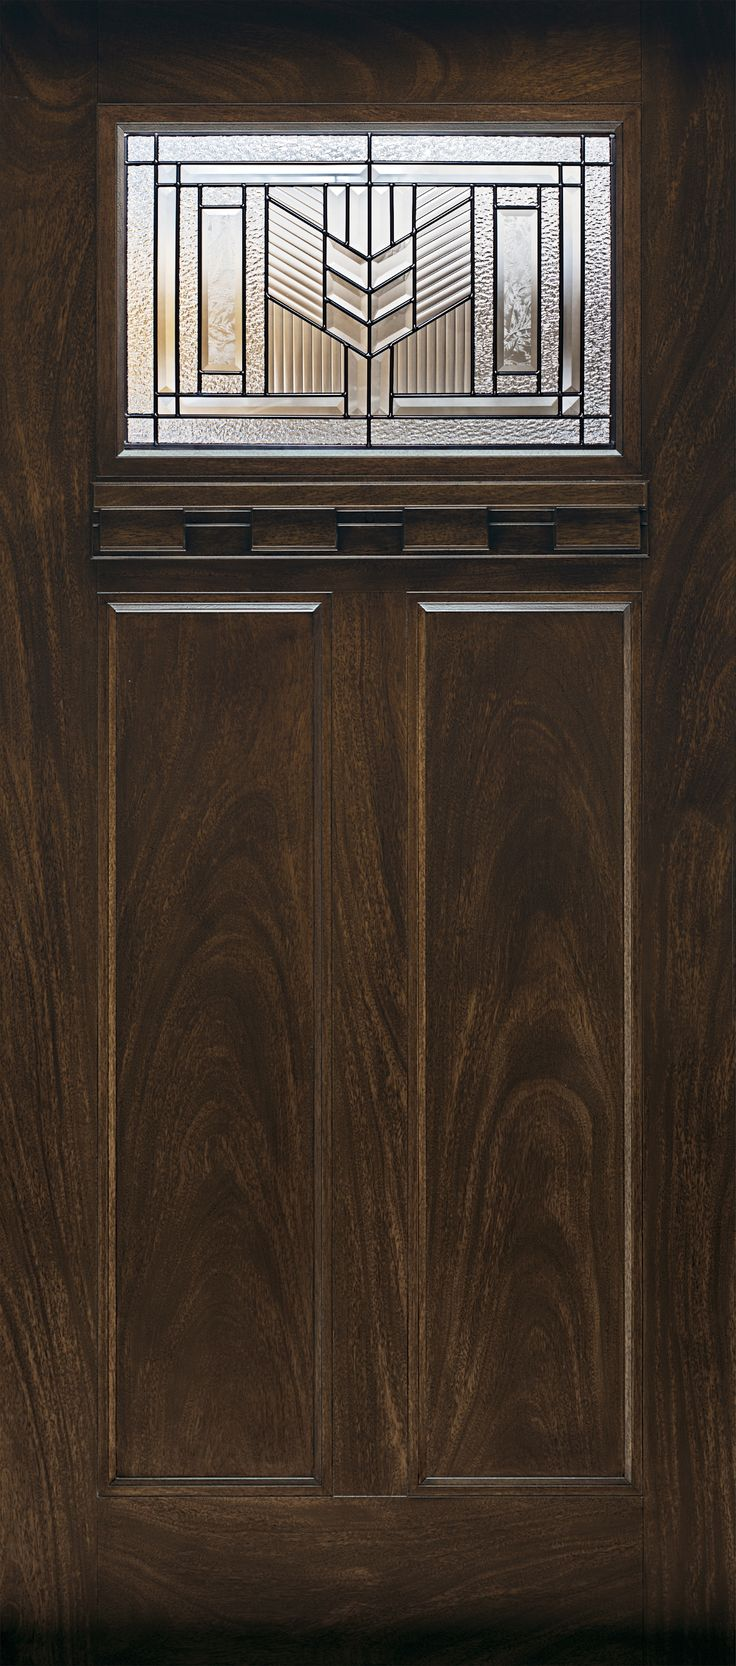 For Craftsman style, look for period details like patterned and leaded-glass lights, along with recessed panels and wood-grain texture. Shown: Feather River factory-finished door, about $530 (prehung); homedepot.com